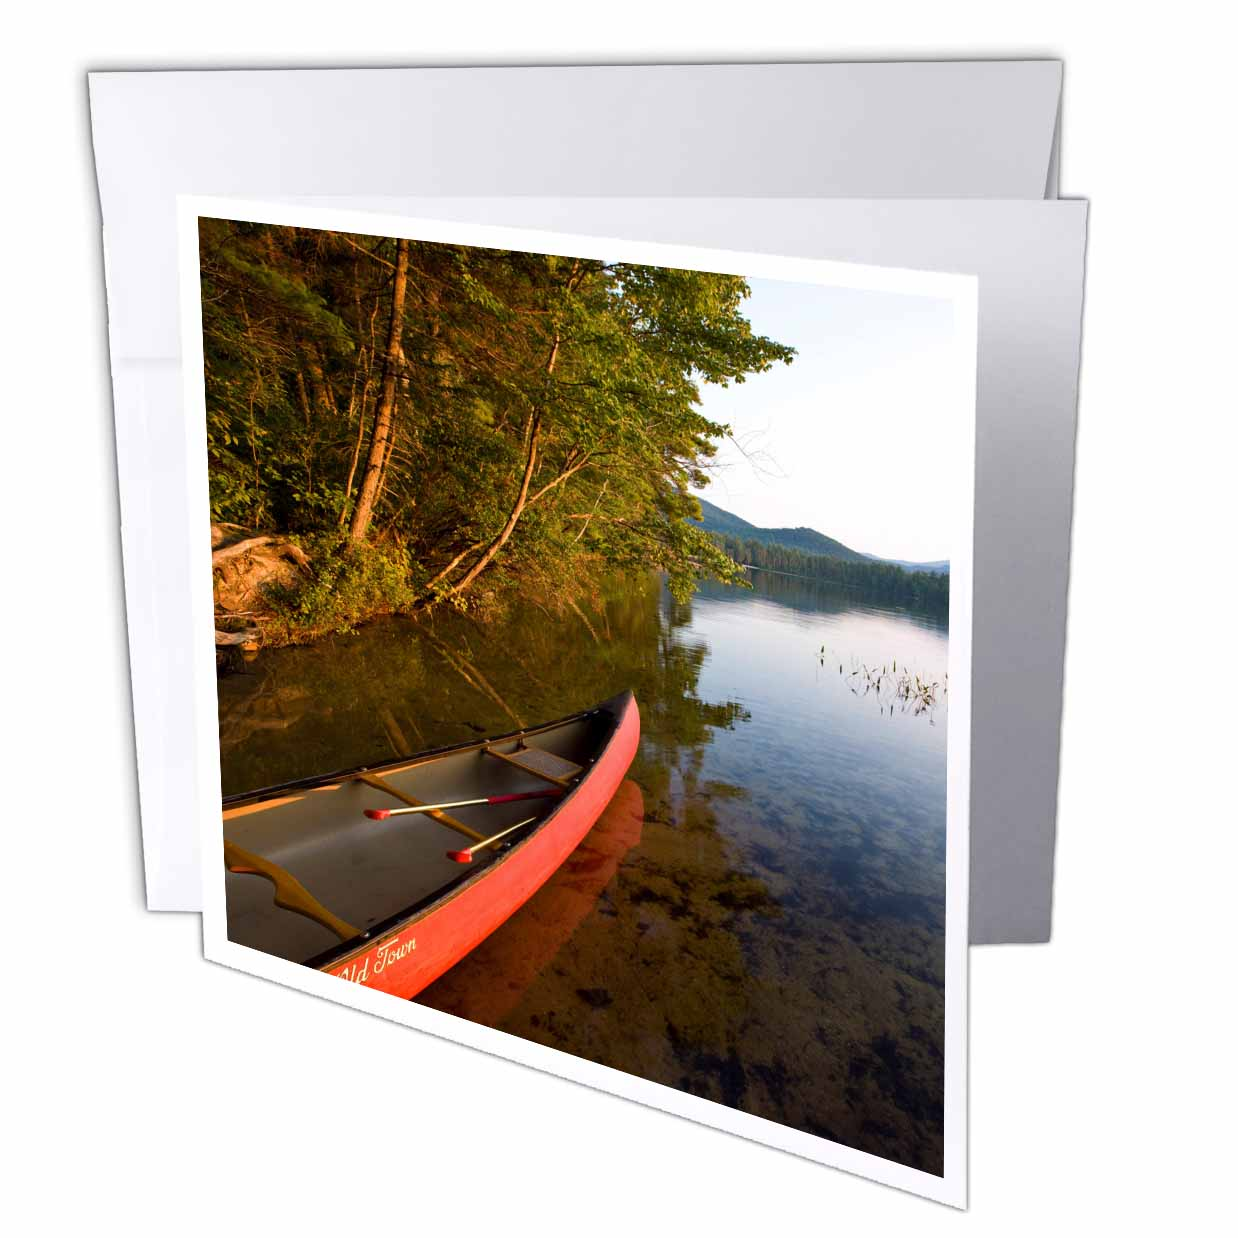 3dRose Canoe, White Lake State Park, New Hampshire - US30 JMO1541 - Jerry and Marcy Monkman, Greeting Cards, 6 x 6 inches, set of 12